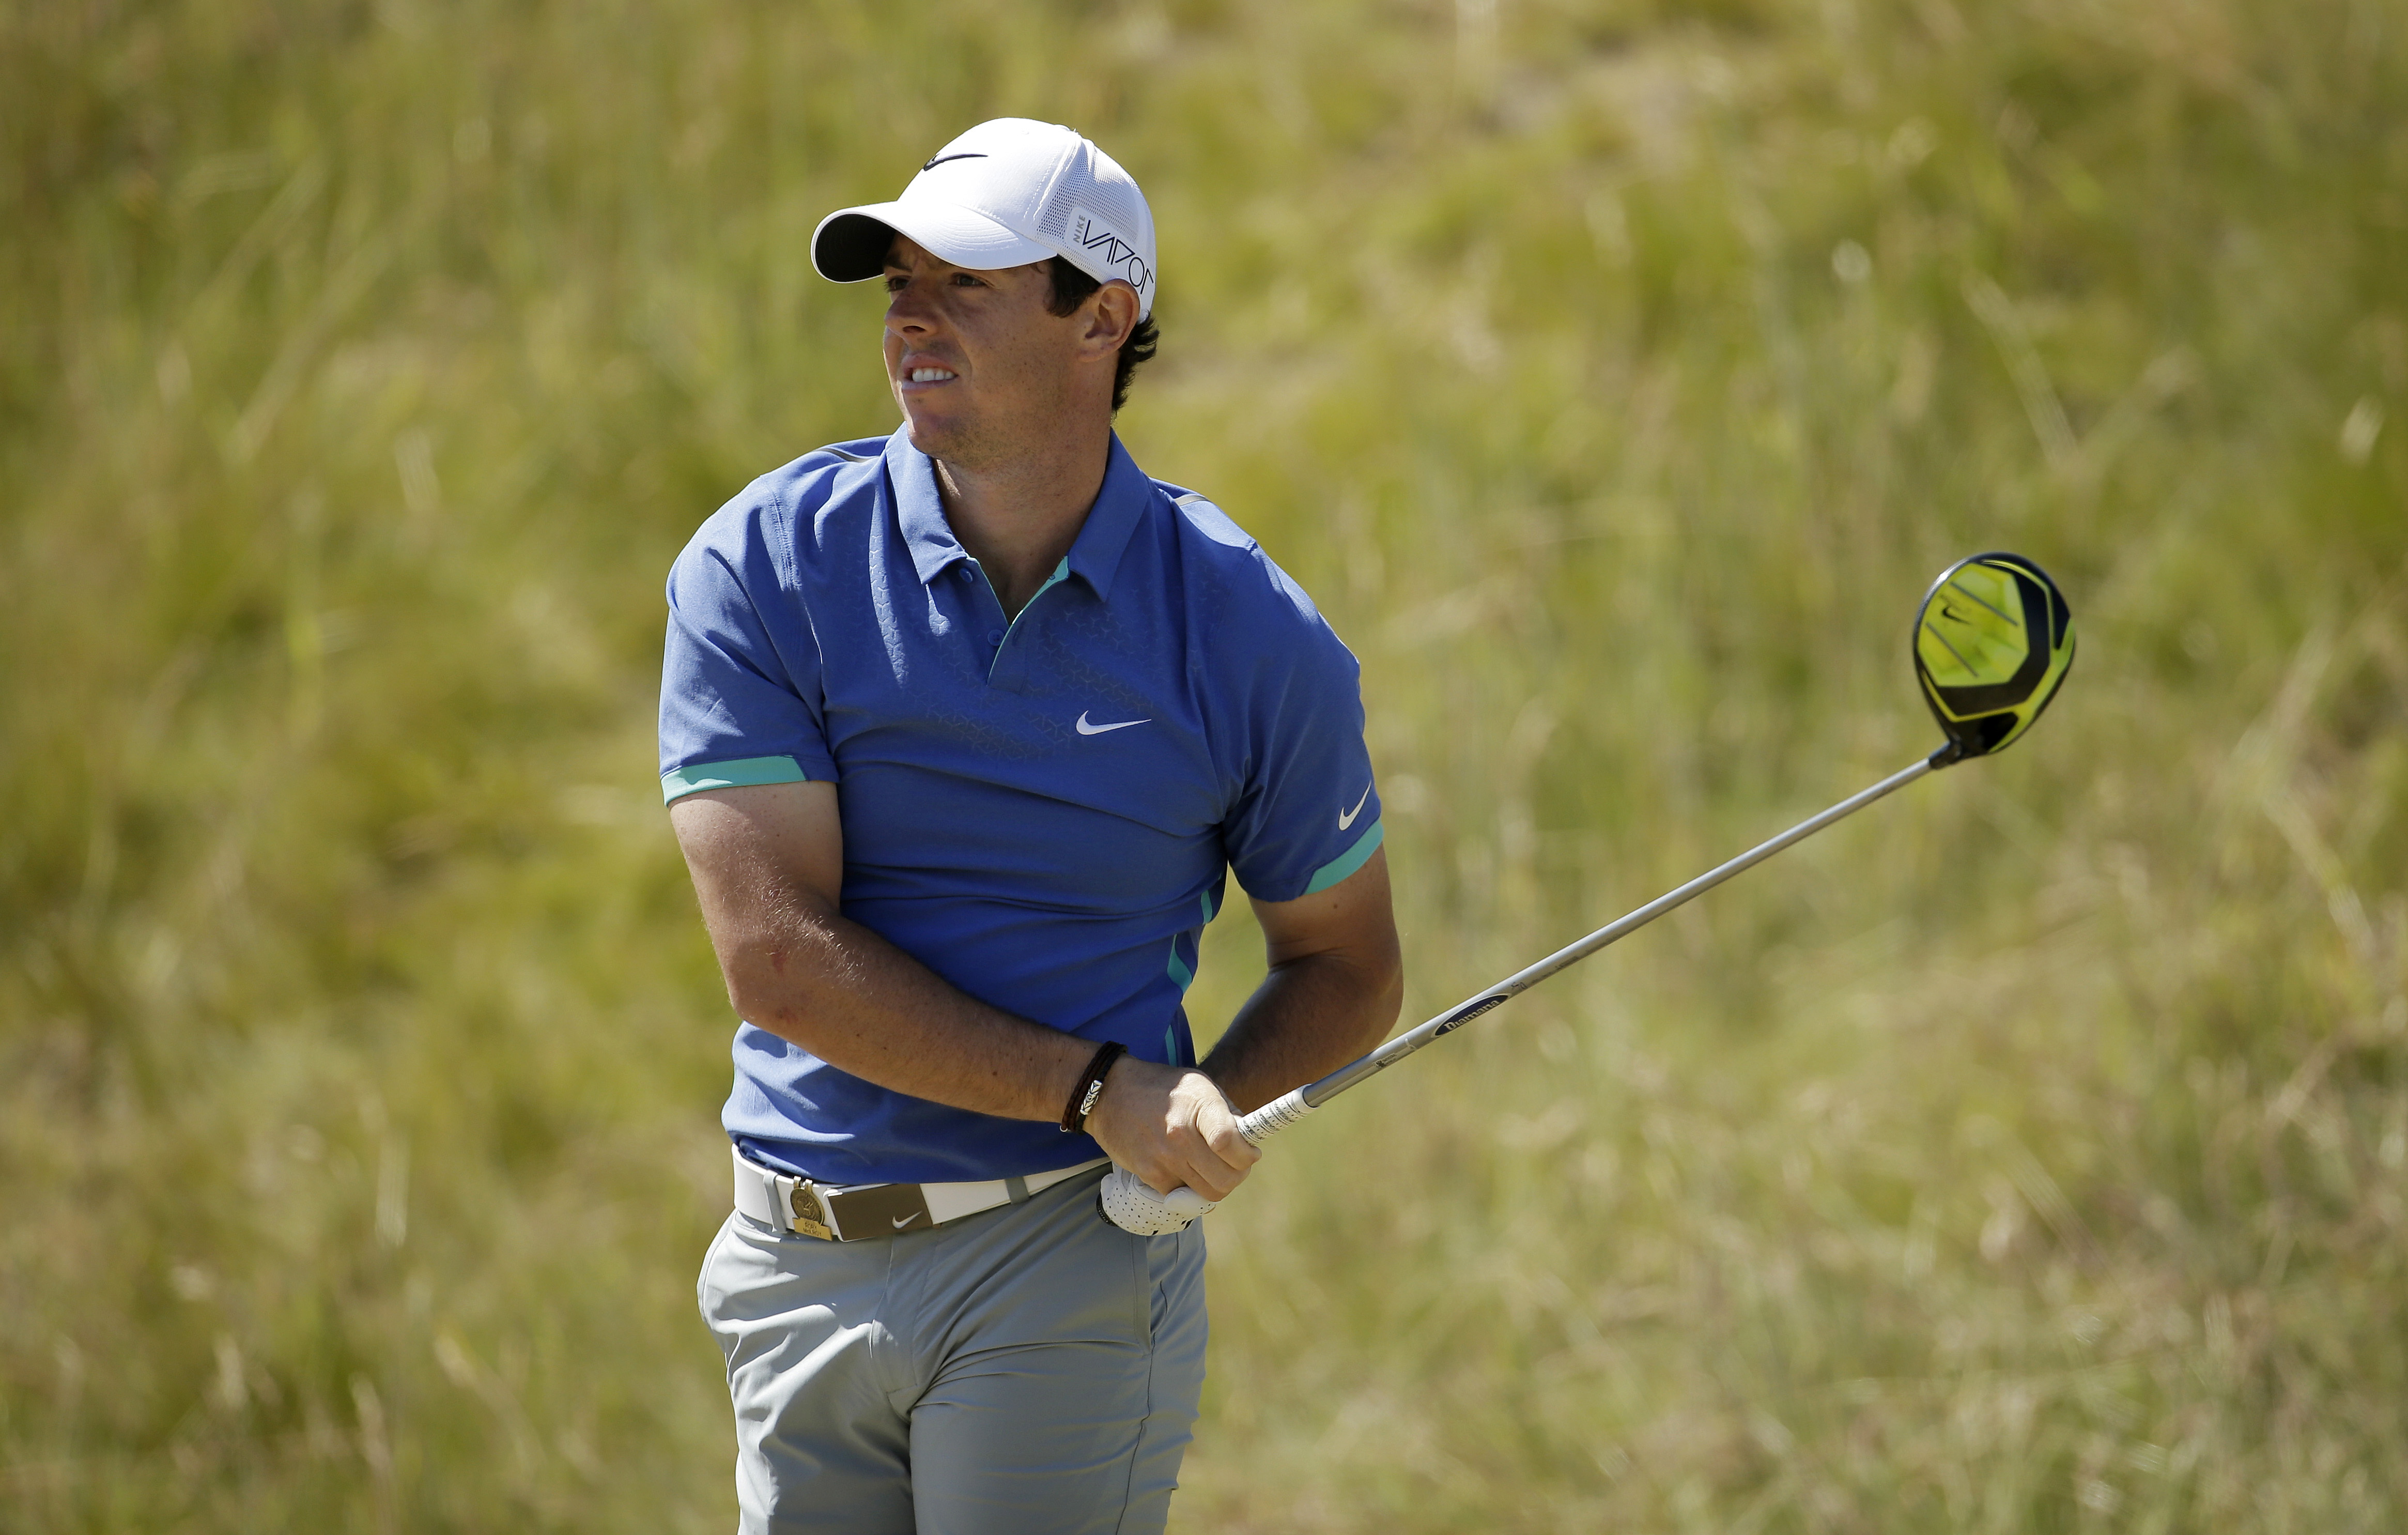 Rory McIlroy, of Northern Ireland, watches his tee shot on the seventh hole during the third round of the U.S. Open golf tournament at Chambers Bay on Saturday, June 20, 2015 in University Place, Wash. (AP Photo/Charlie Riedel)